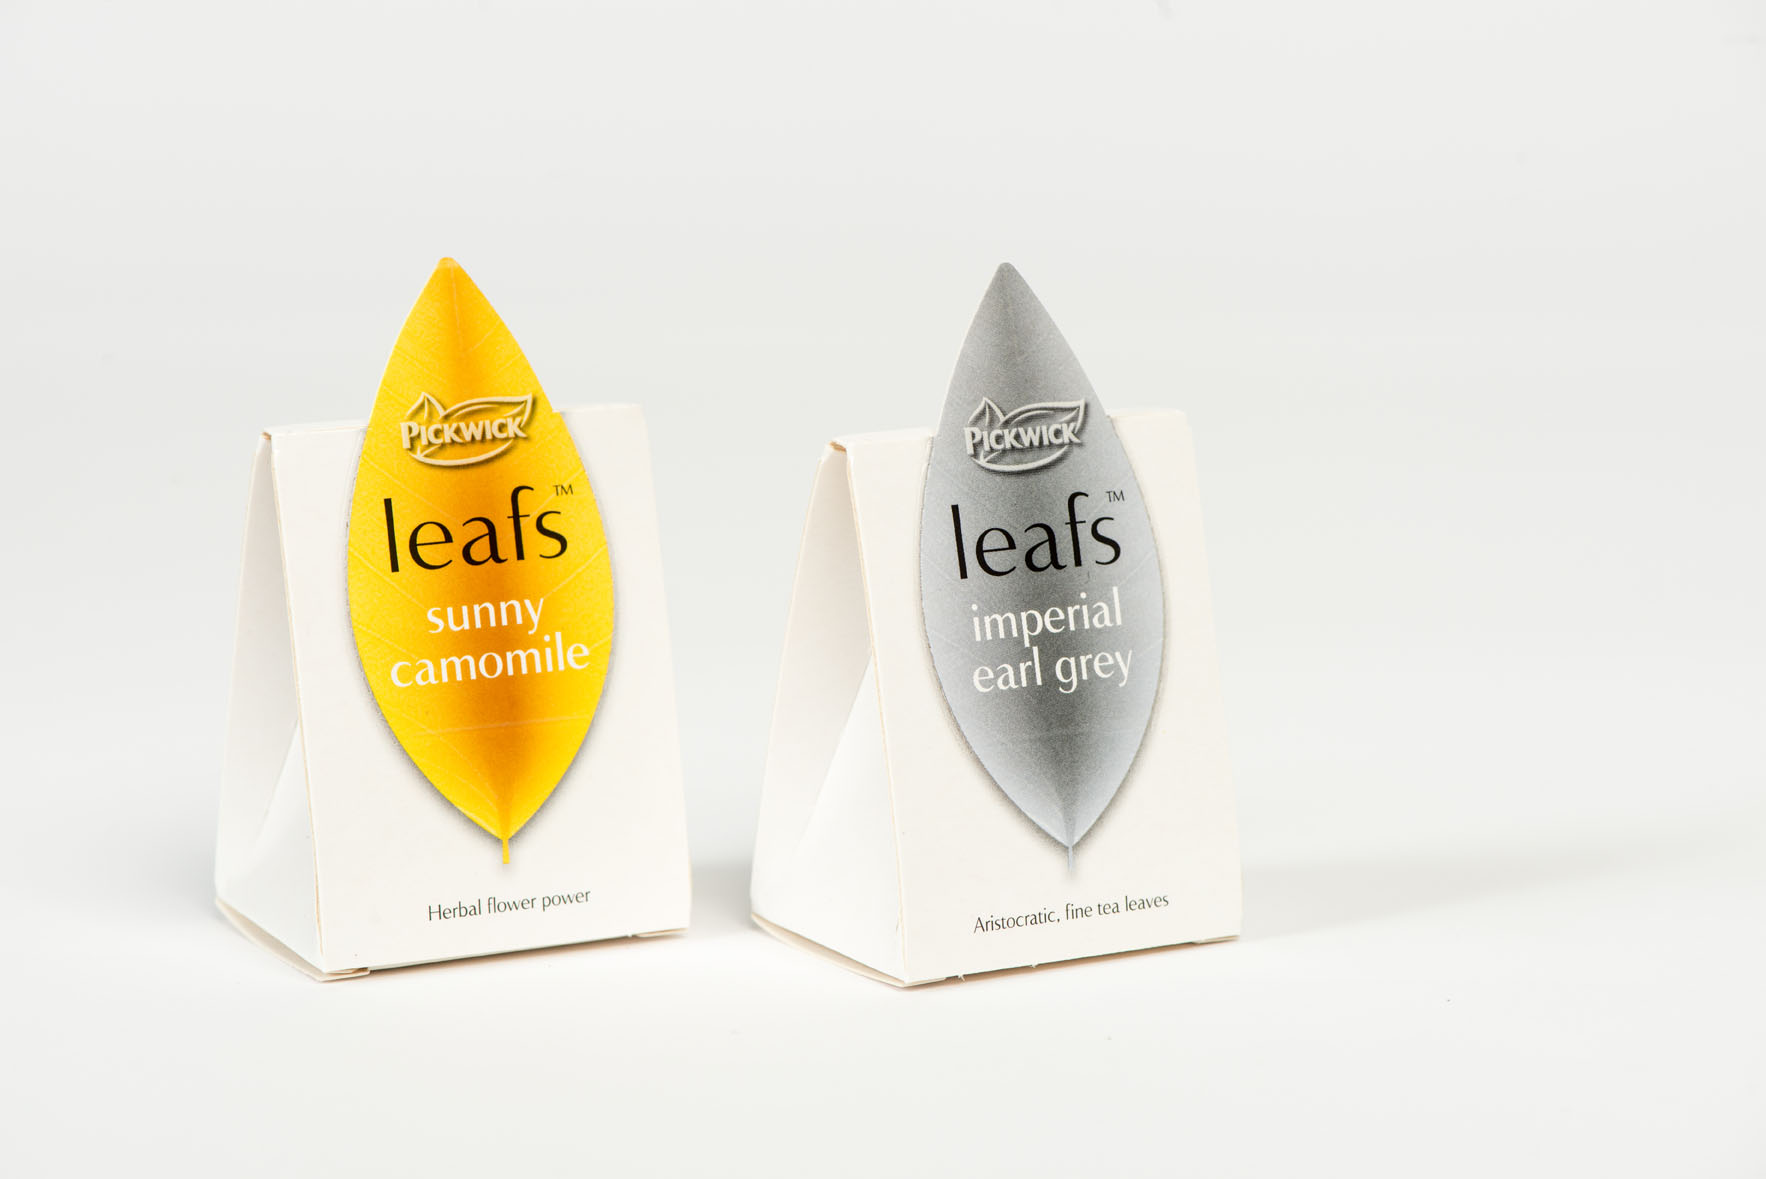 design-packaging-leafs-tea-pickwick